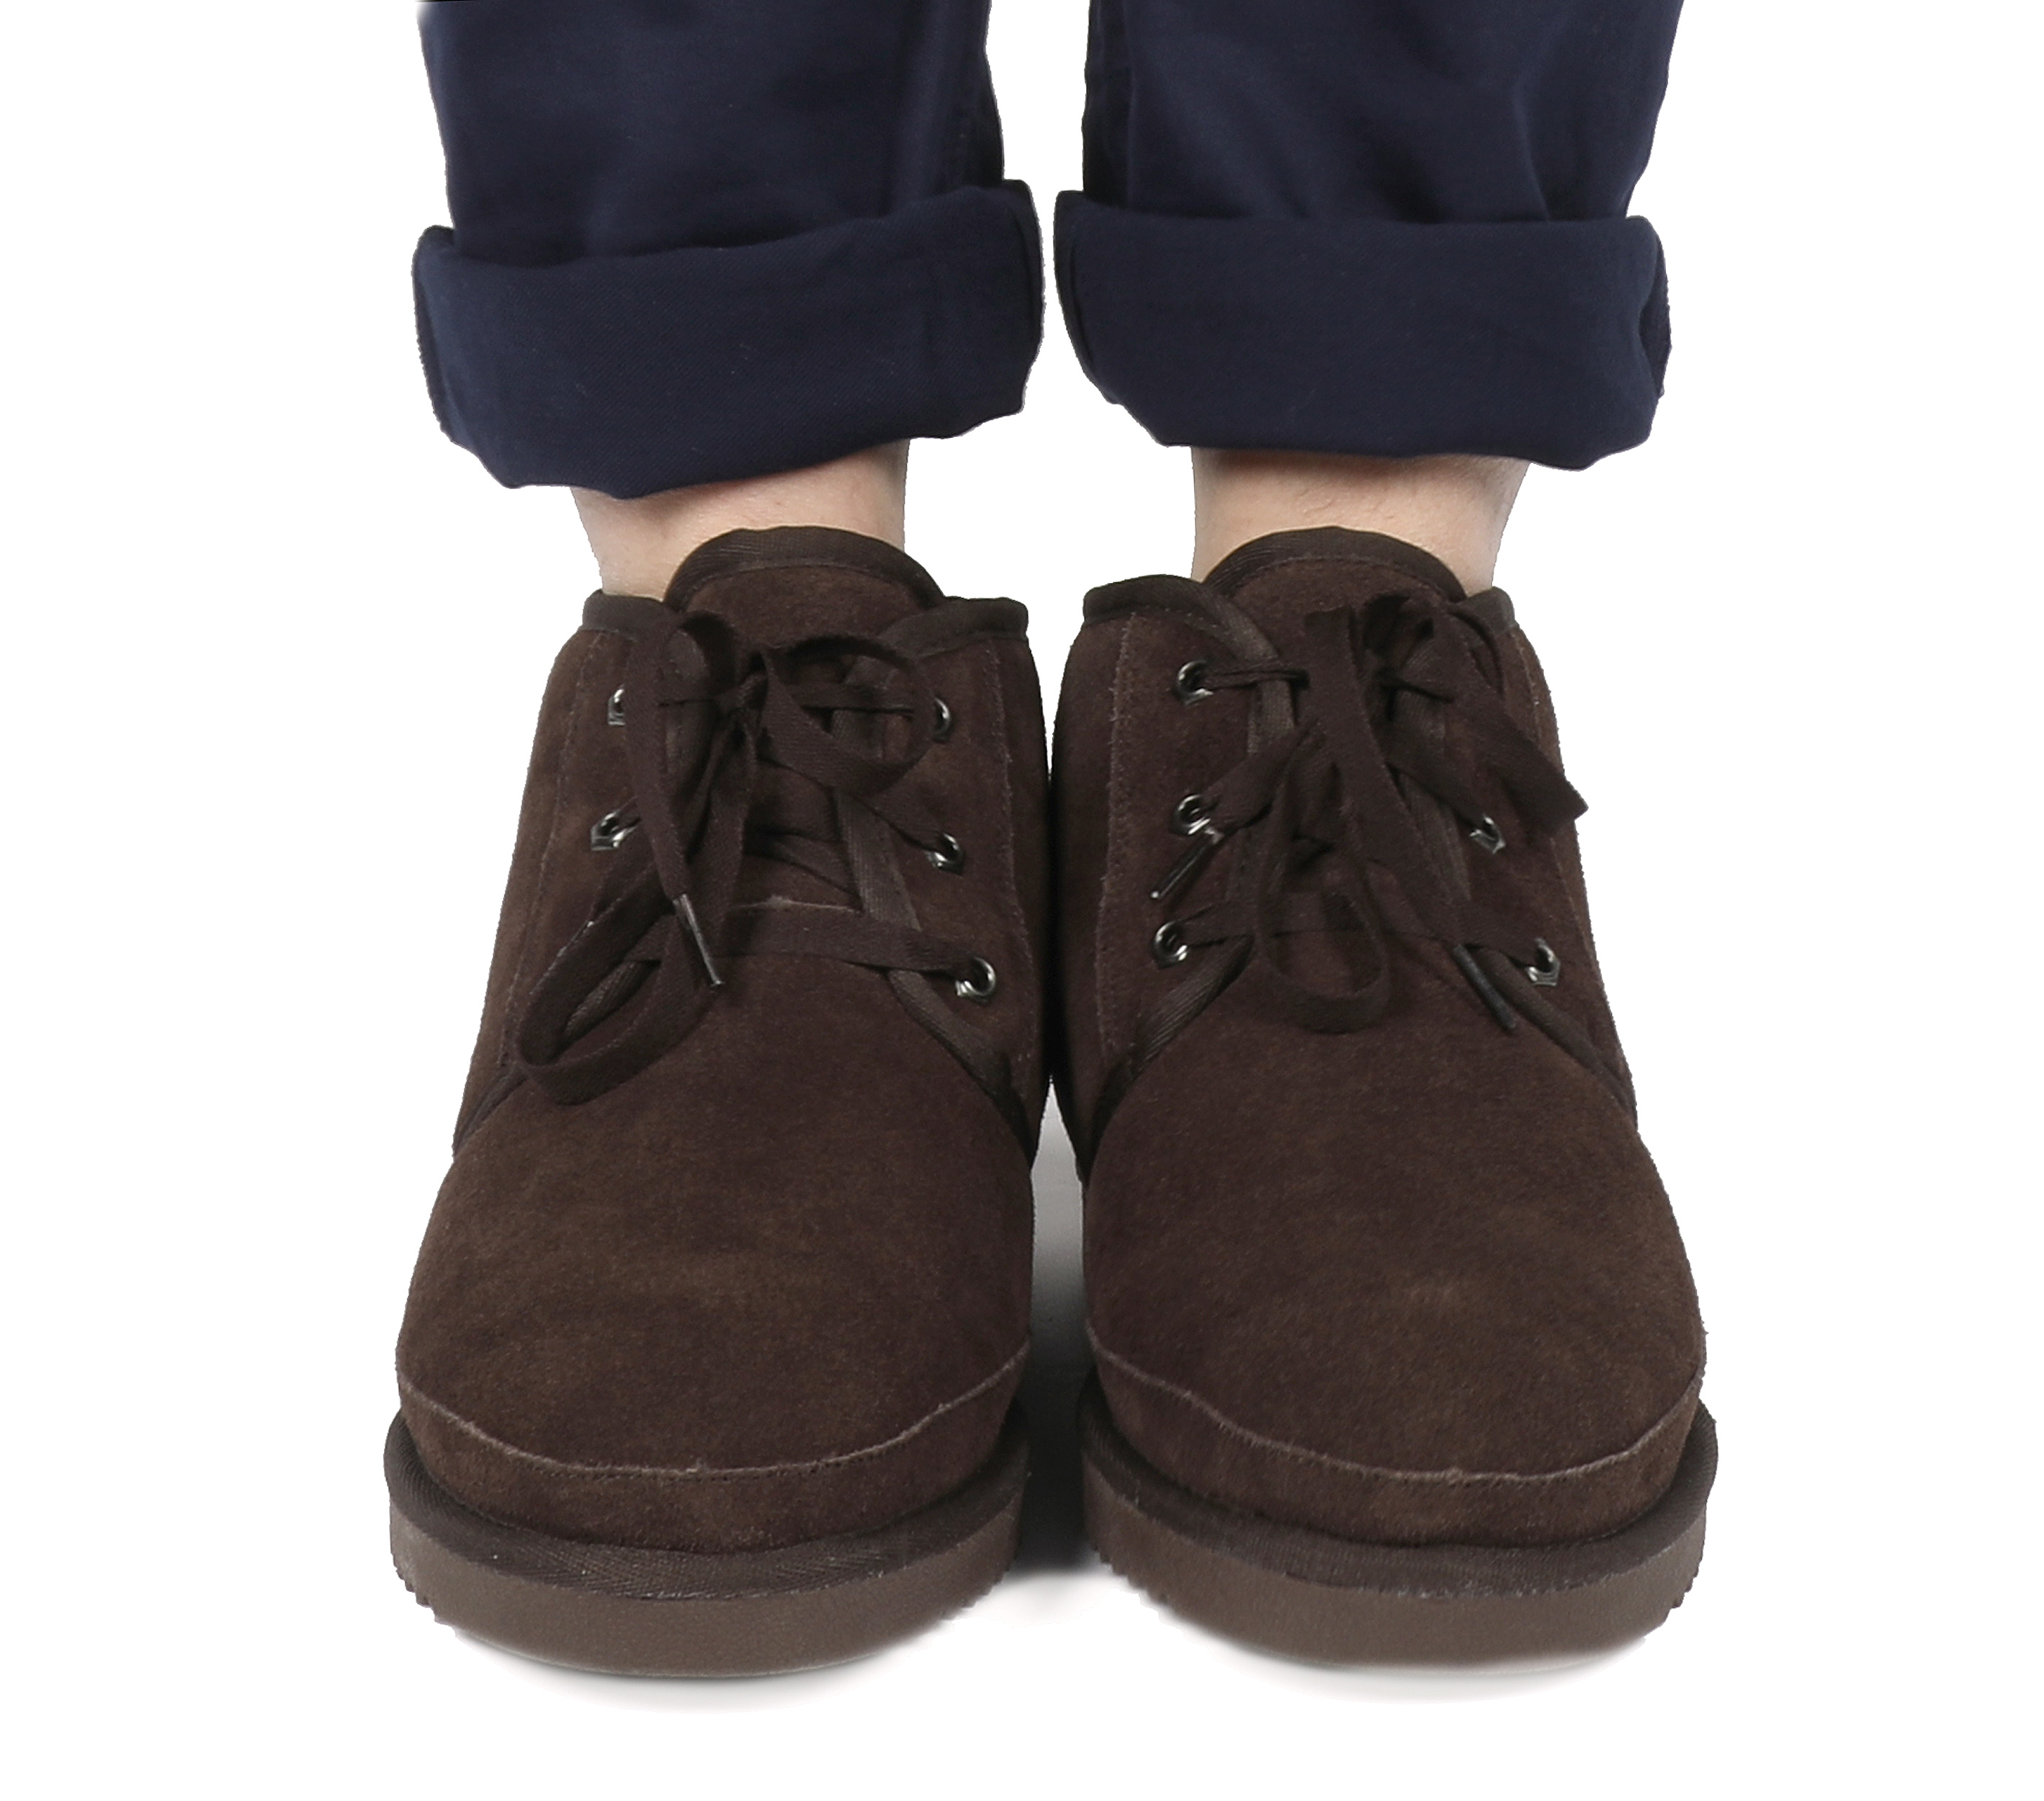 DREAM PAIRS Men Wolly-01 Suede Sheepskin Fur House Loafers Casual Winter Boots